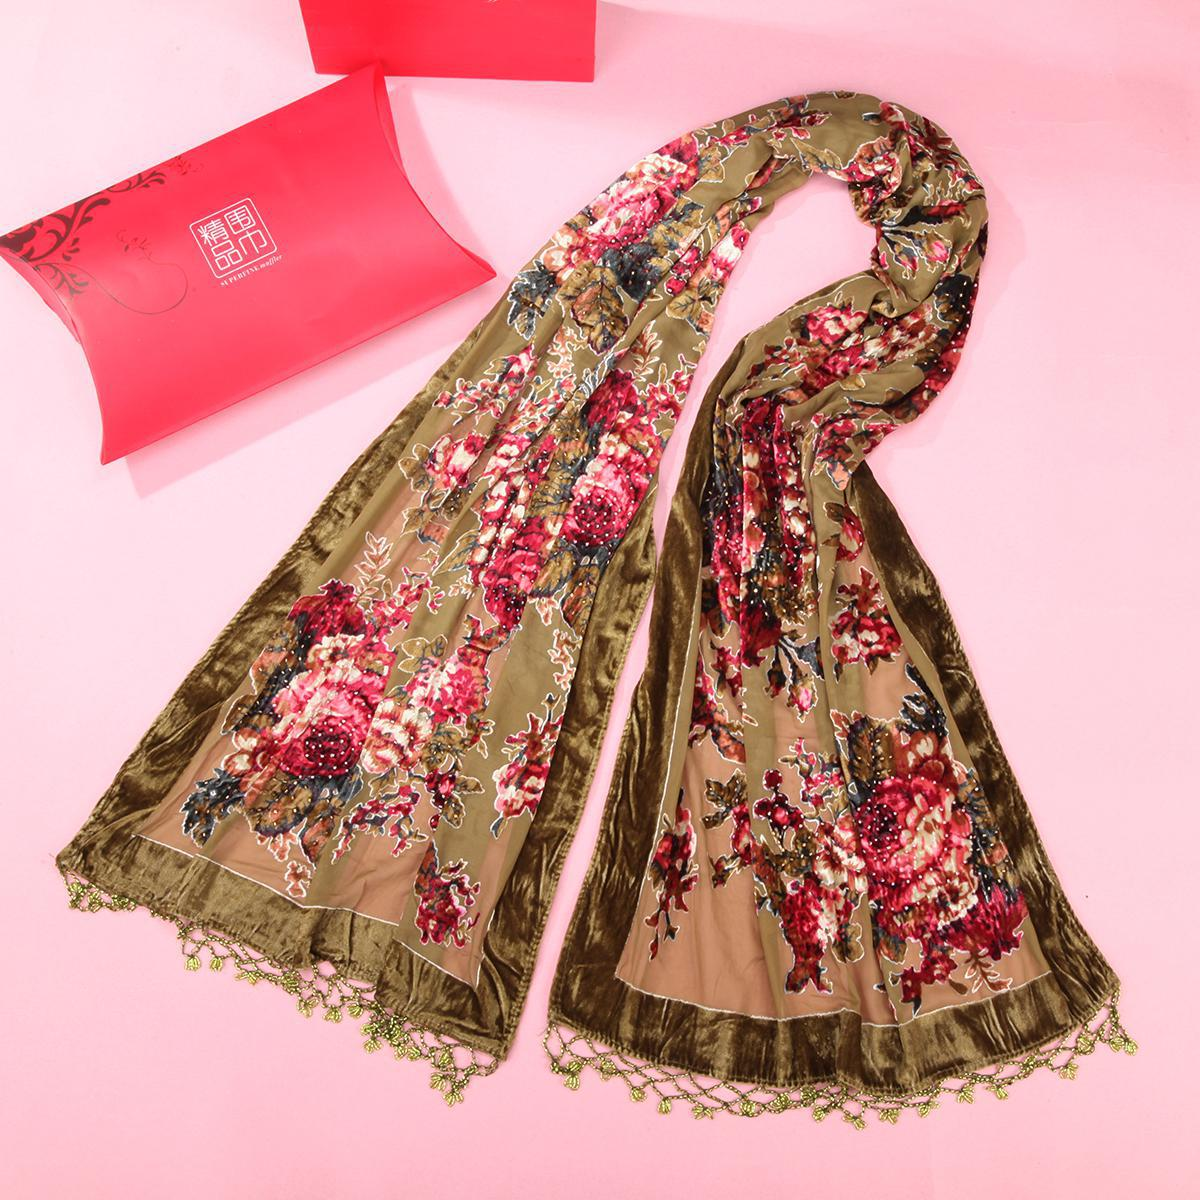 2019 New Vintage Flower   Scarves     Wrap   Women's Velvet Pashmina Printed Shawls Cape Handmade Beaded Muffler Hijab Kerchief Shawl